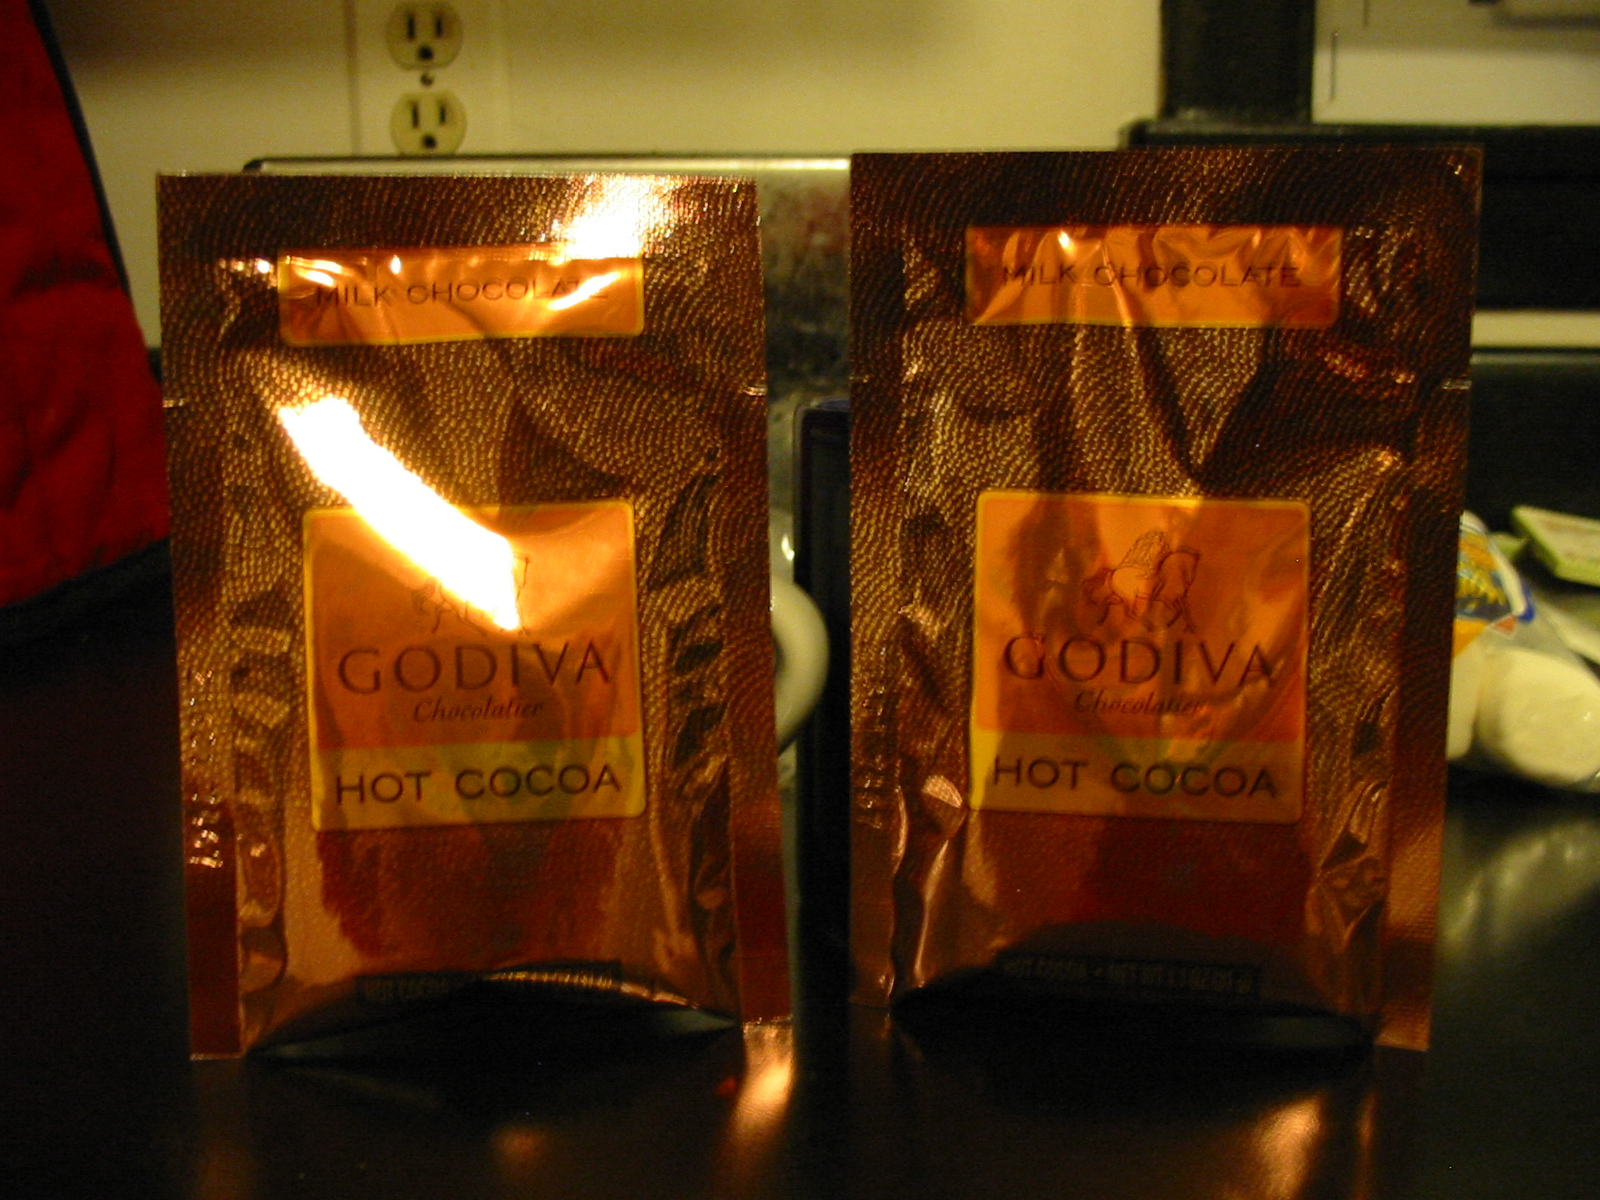 The Chocolate Cult Godiva Hot Cocoa Reviewed